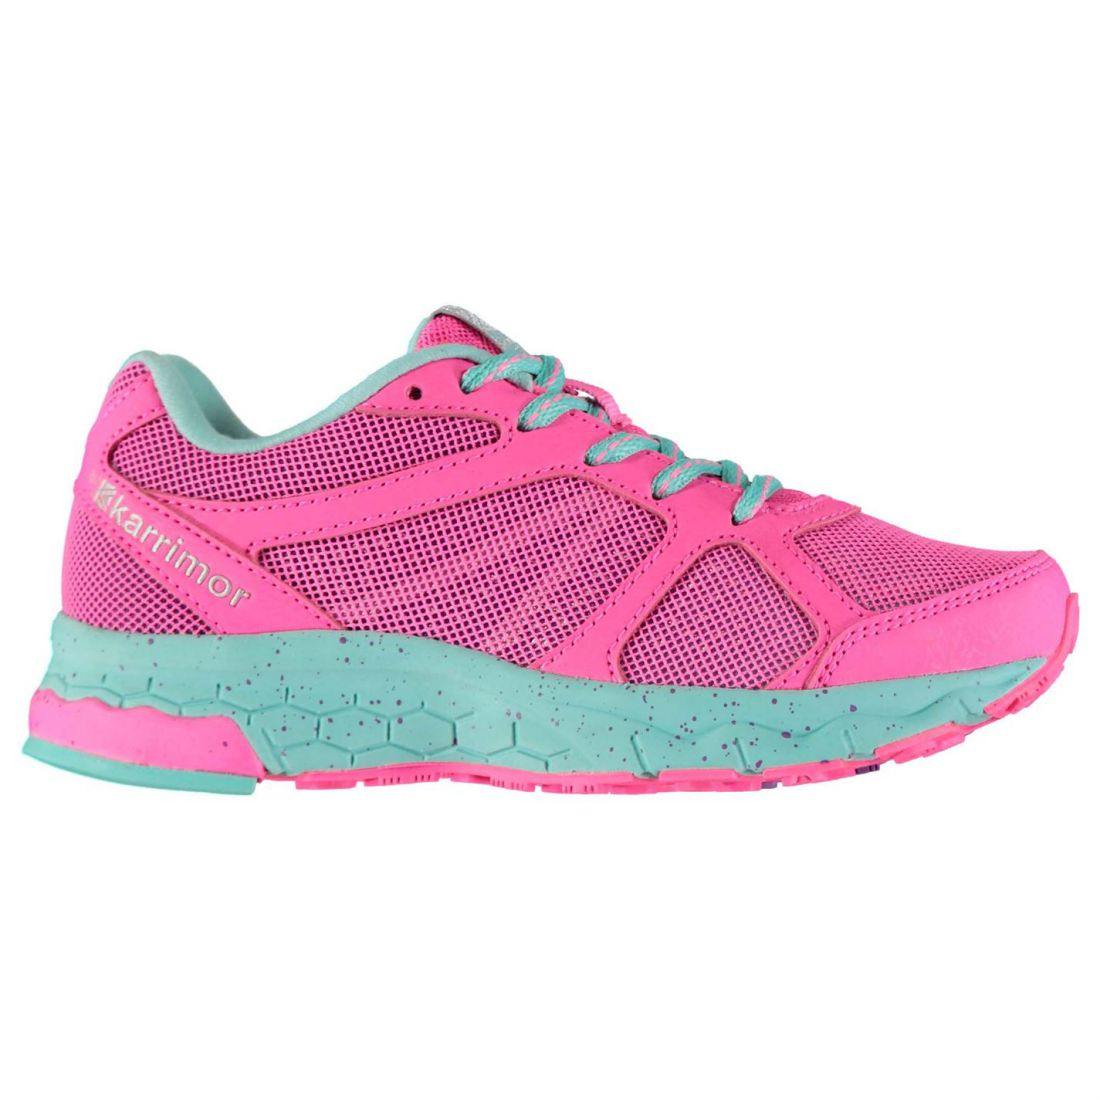 59b05d2ee63986 Karrimor Kids Girls Tempo 5 Road Running Shoes Runners Lace Up ...